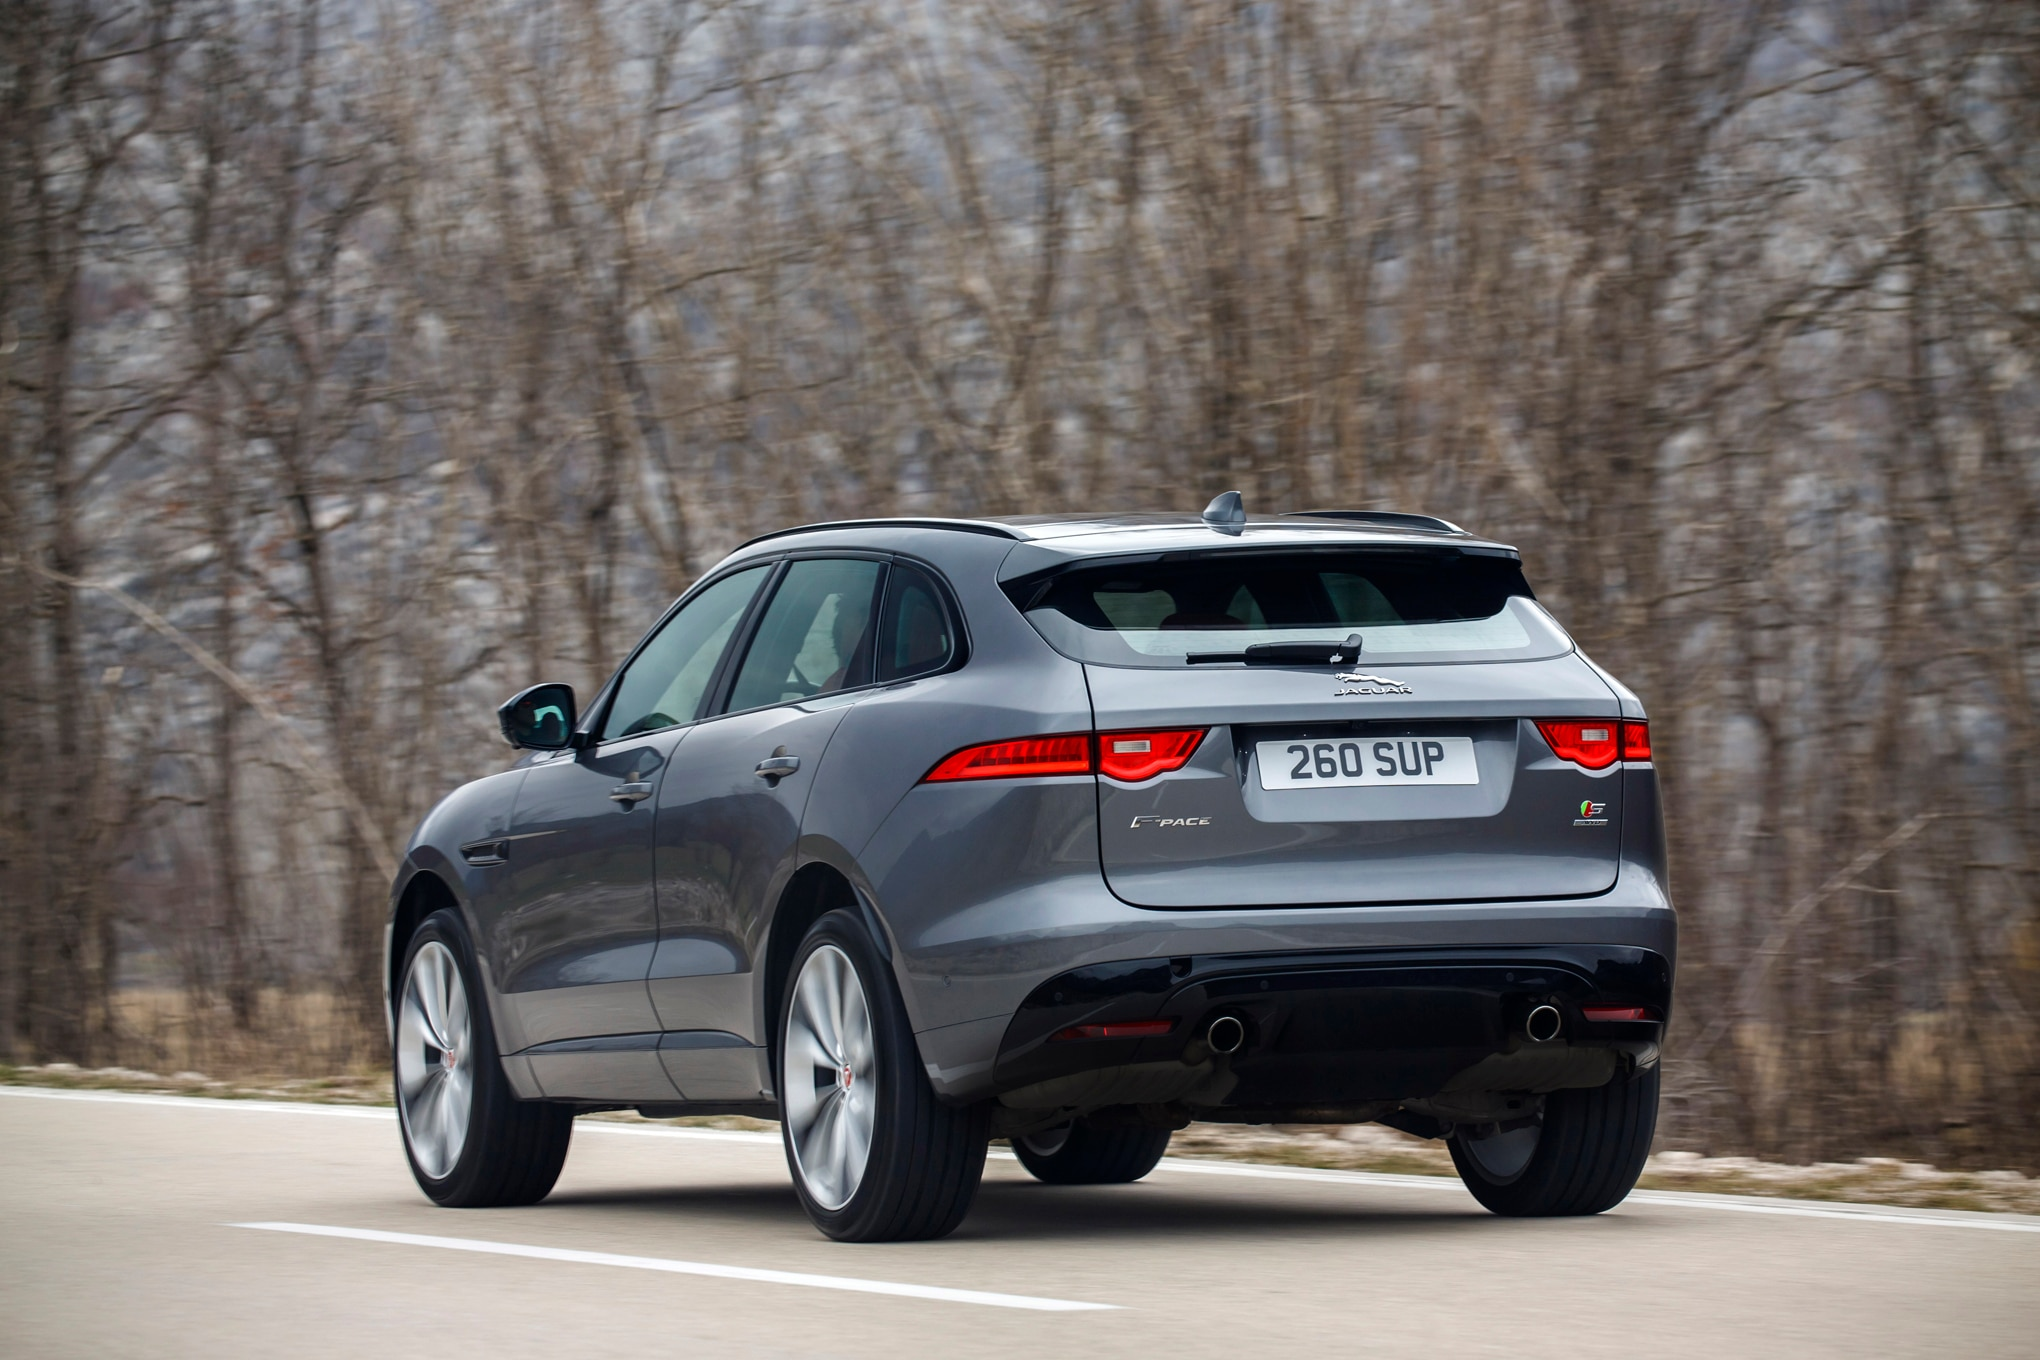 The f pace